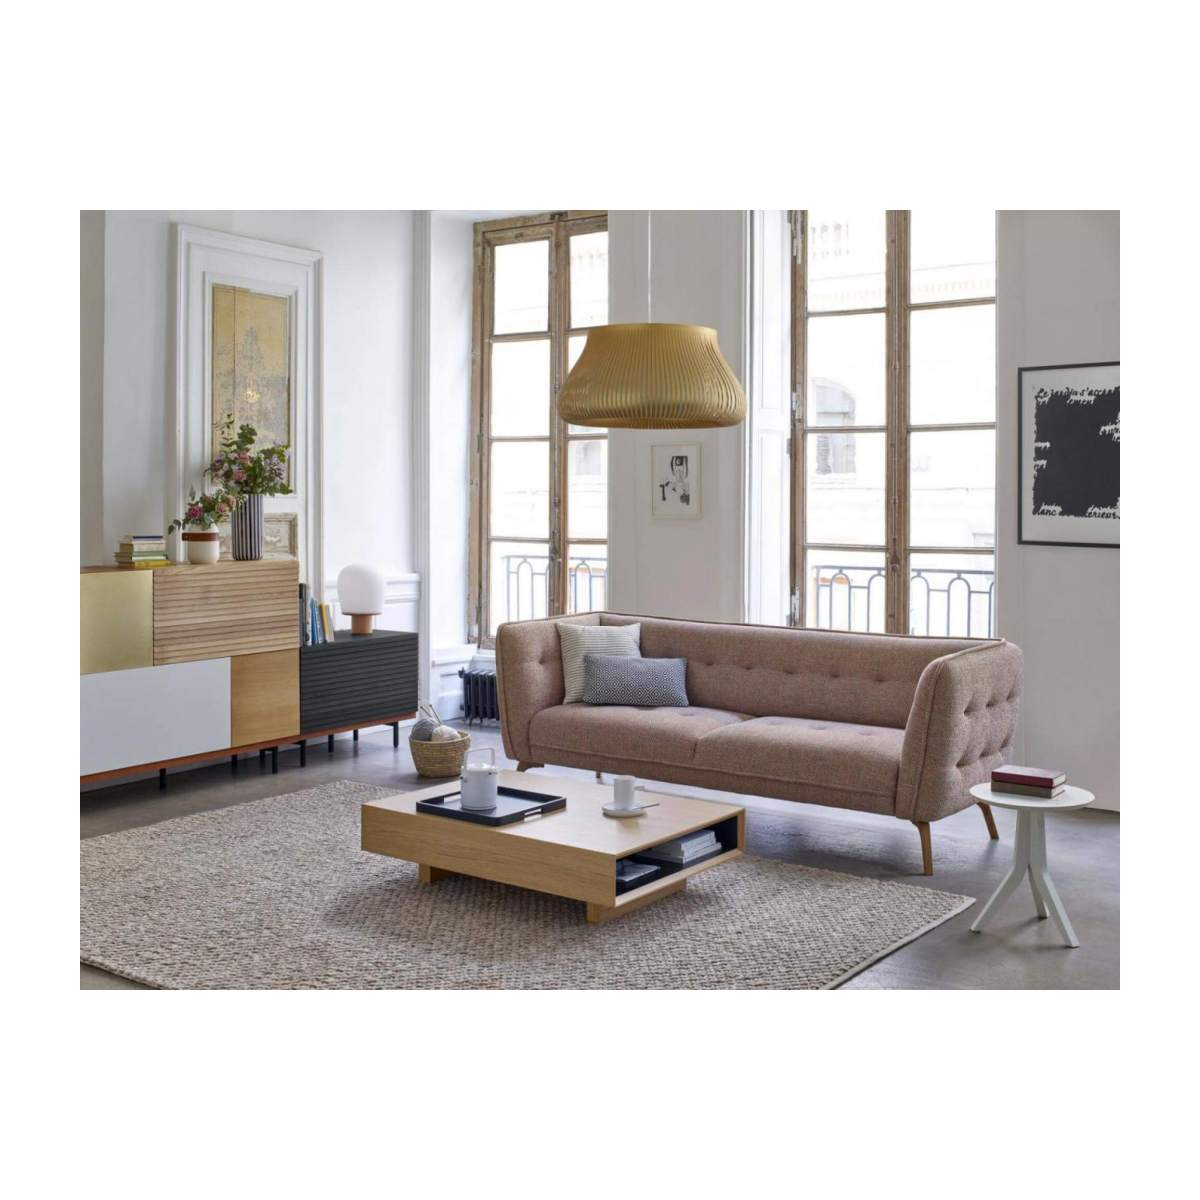 2 seater sofa in Lecce fabric, muscat and natural oak feet n°2